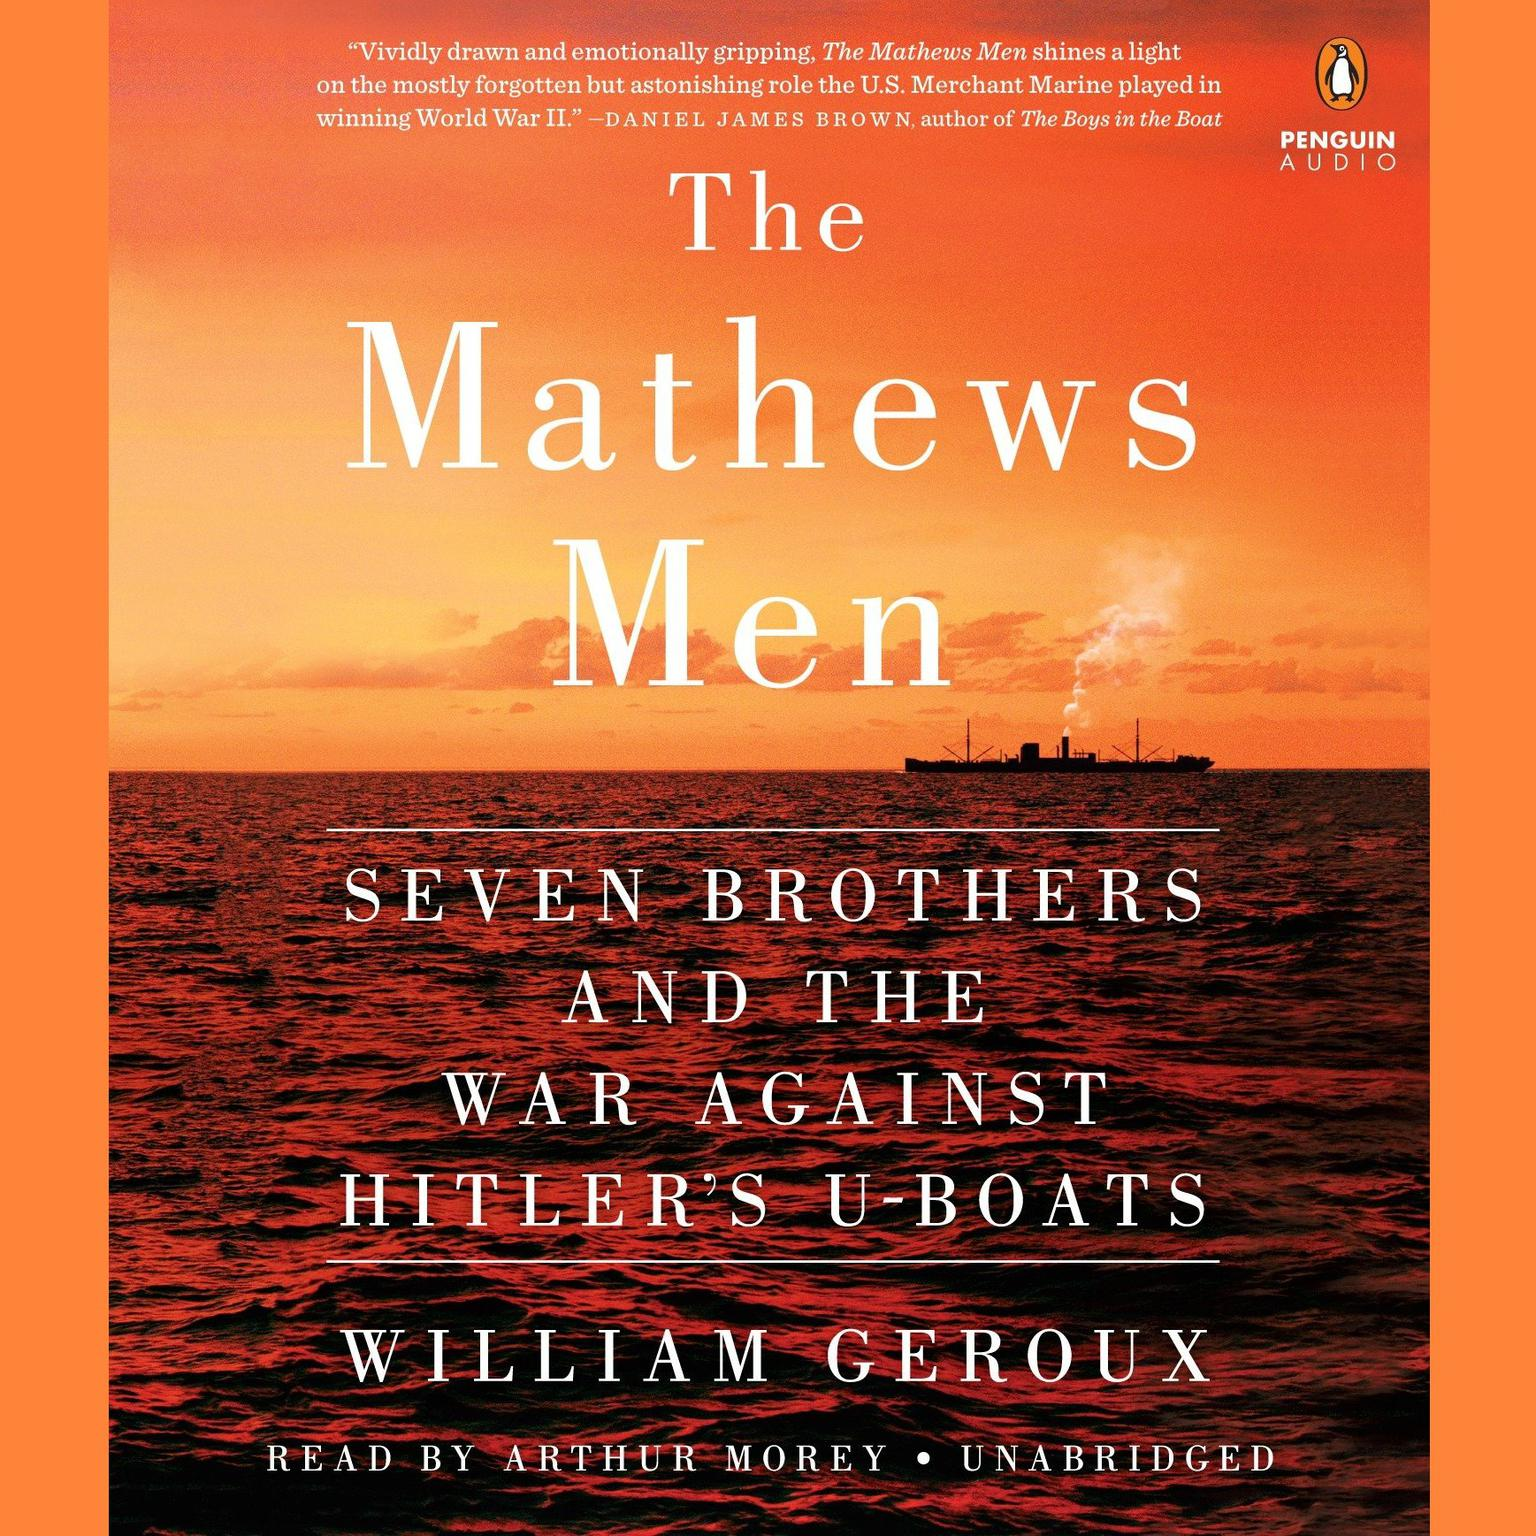 Printable The Mathews Men: Seven Brothers and the War against Hitler's U-boats Audiobook Cover Art